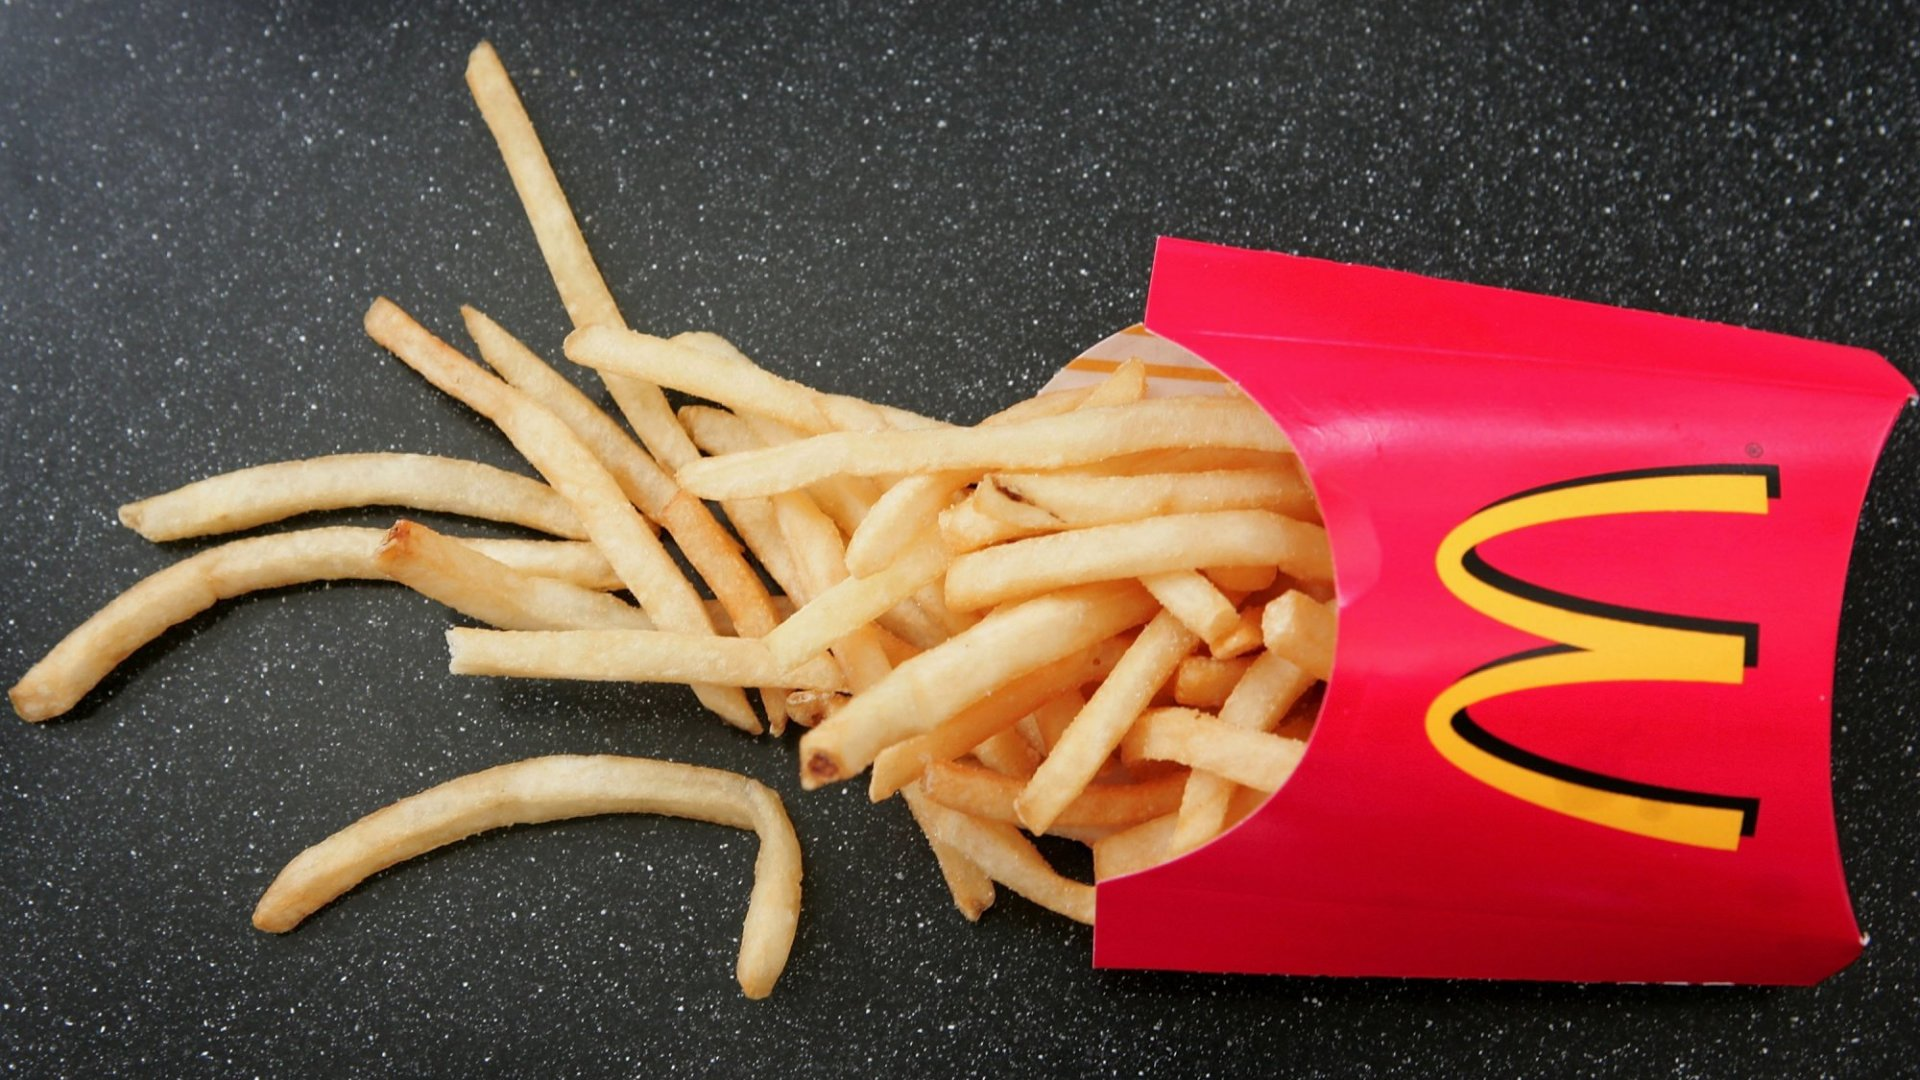 1 Simple Tweak to the McDonald's Logo Could Save the Fast Food Giant Gobs of Money